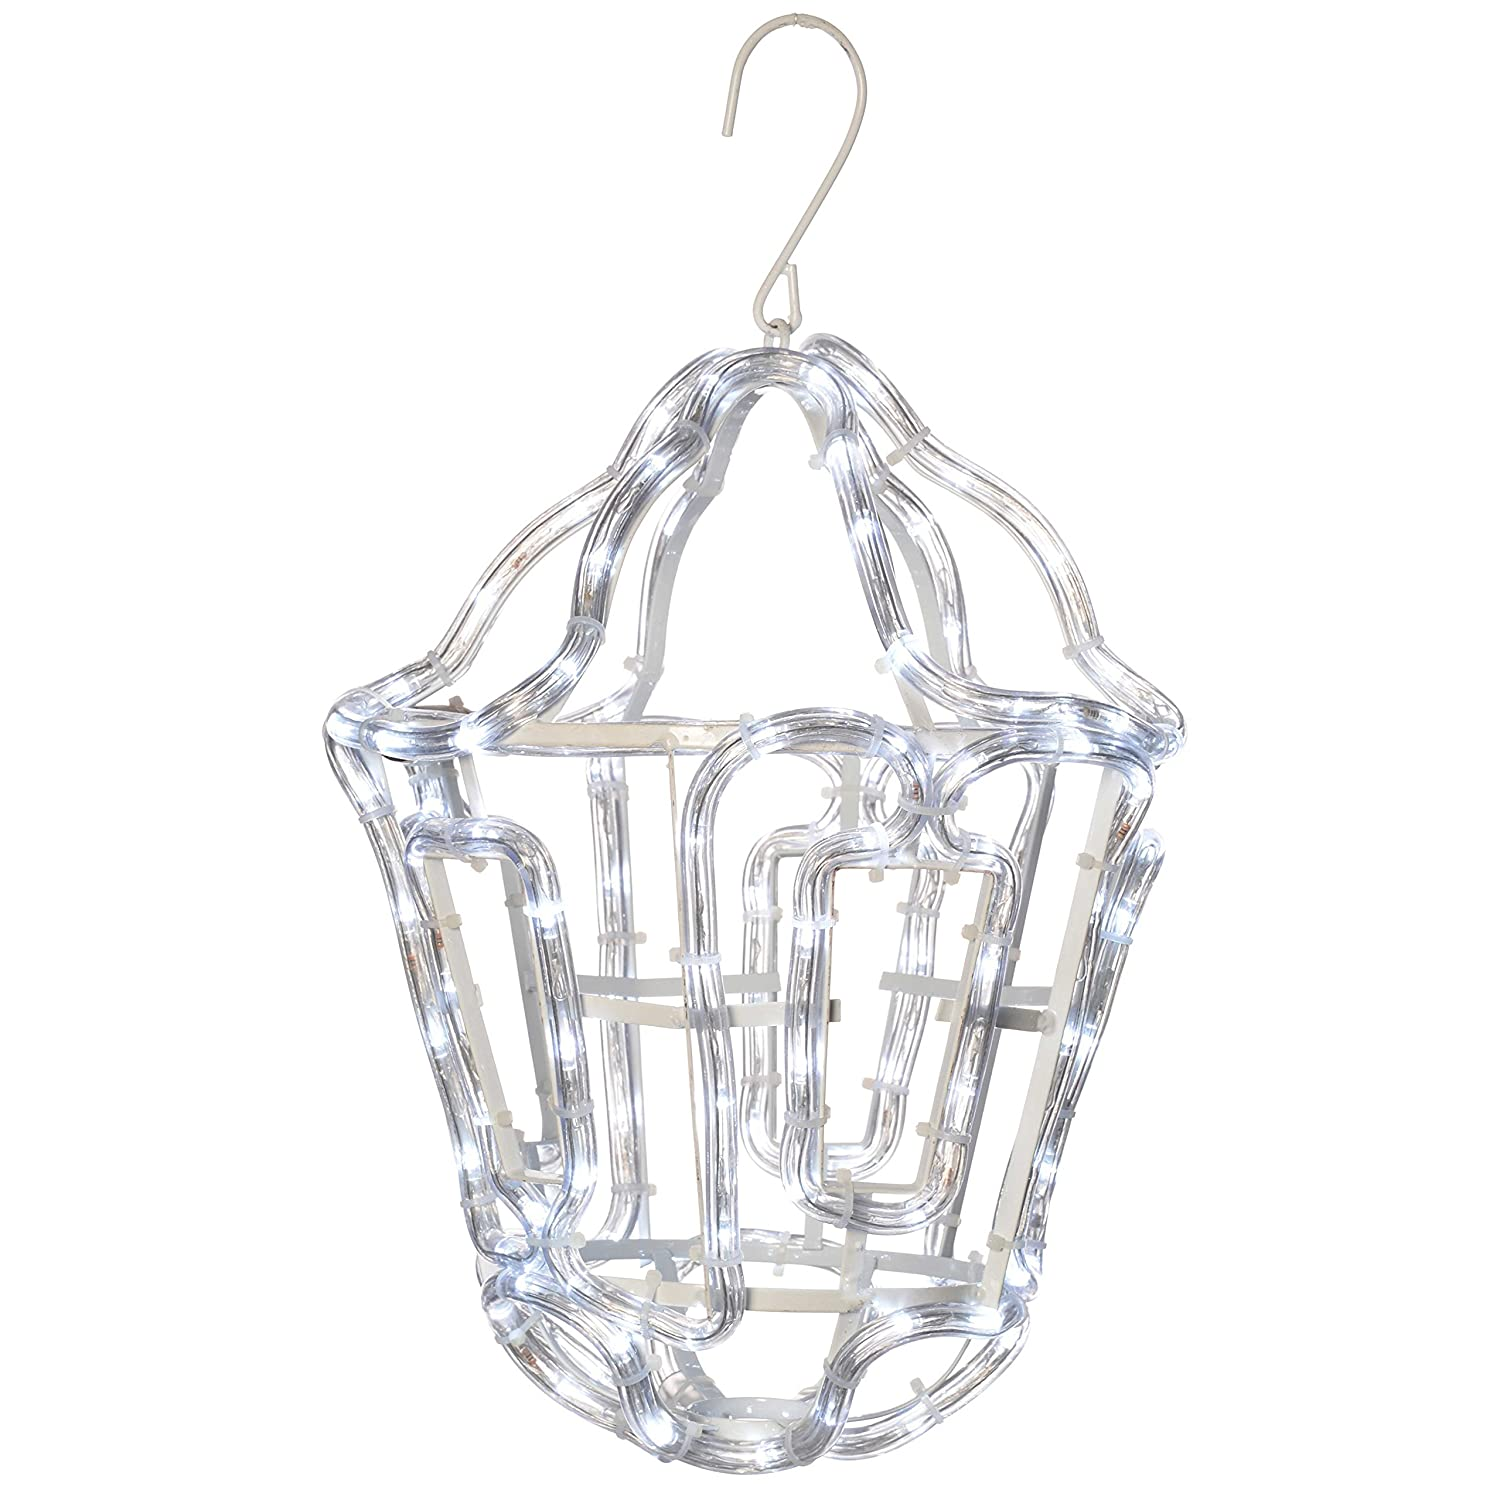 WeRChristmas Hanging Lantern Rope Light Silhouette Outdoor Garden Wall Christmas Decoration with White LED, 36 cm - Yellow WRC-5026